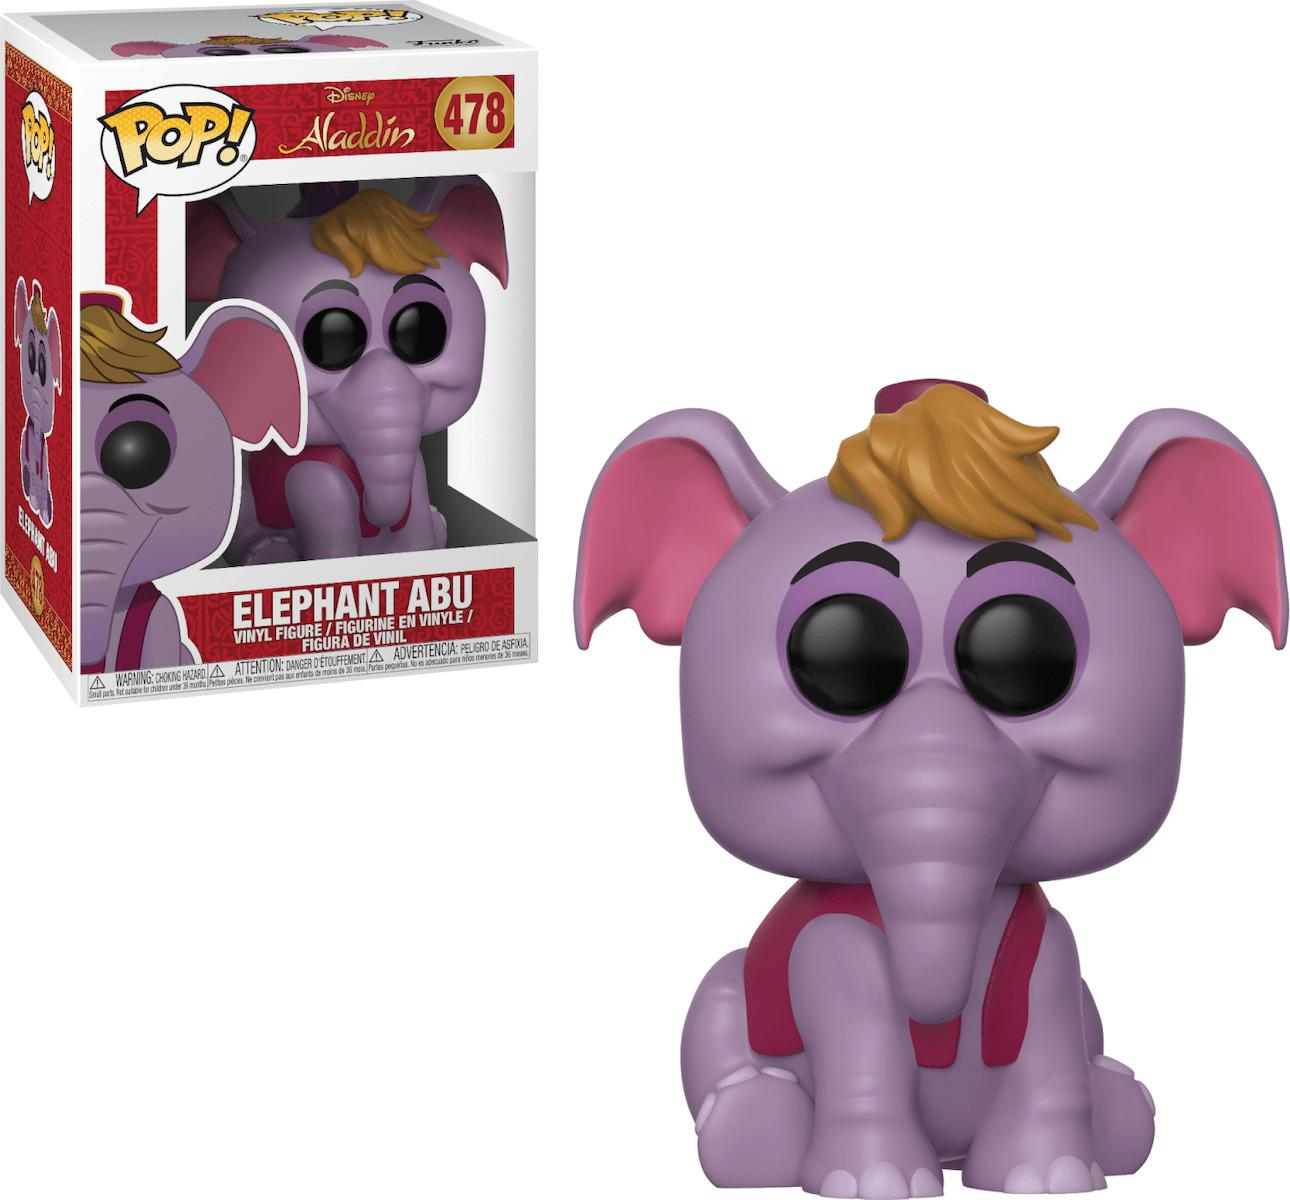 POP! Disney Aladdin - Elephant Abu (478) Vinyl Figure